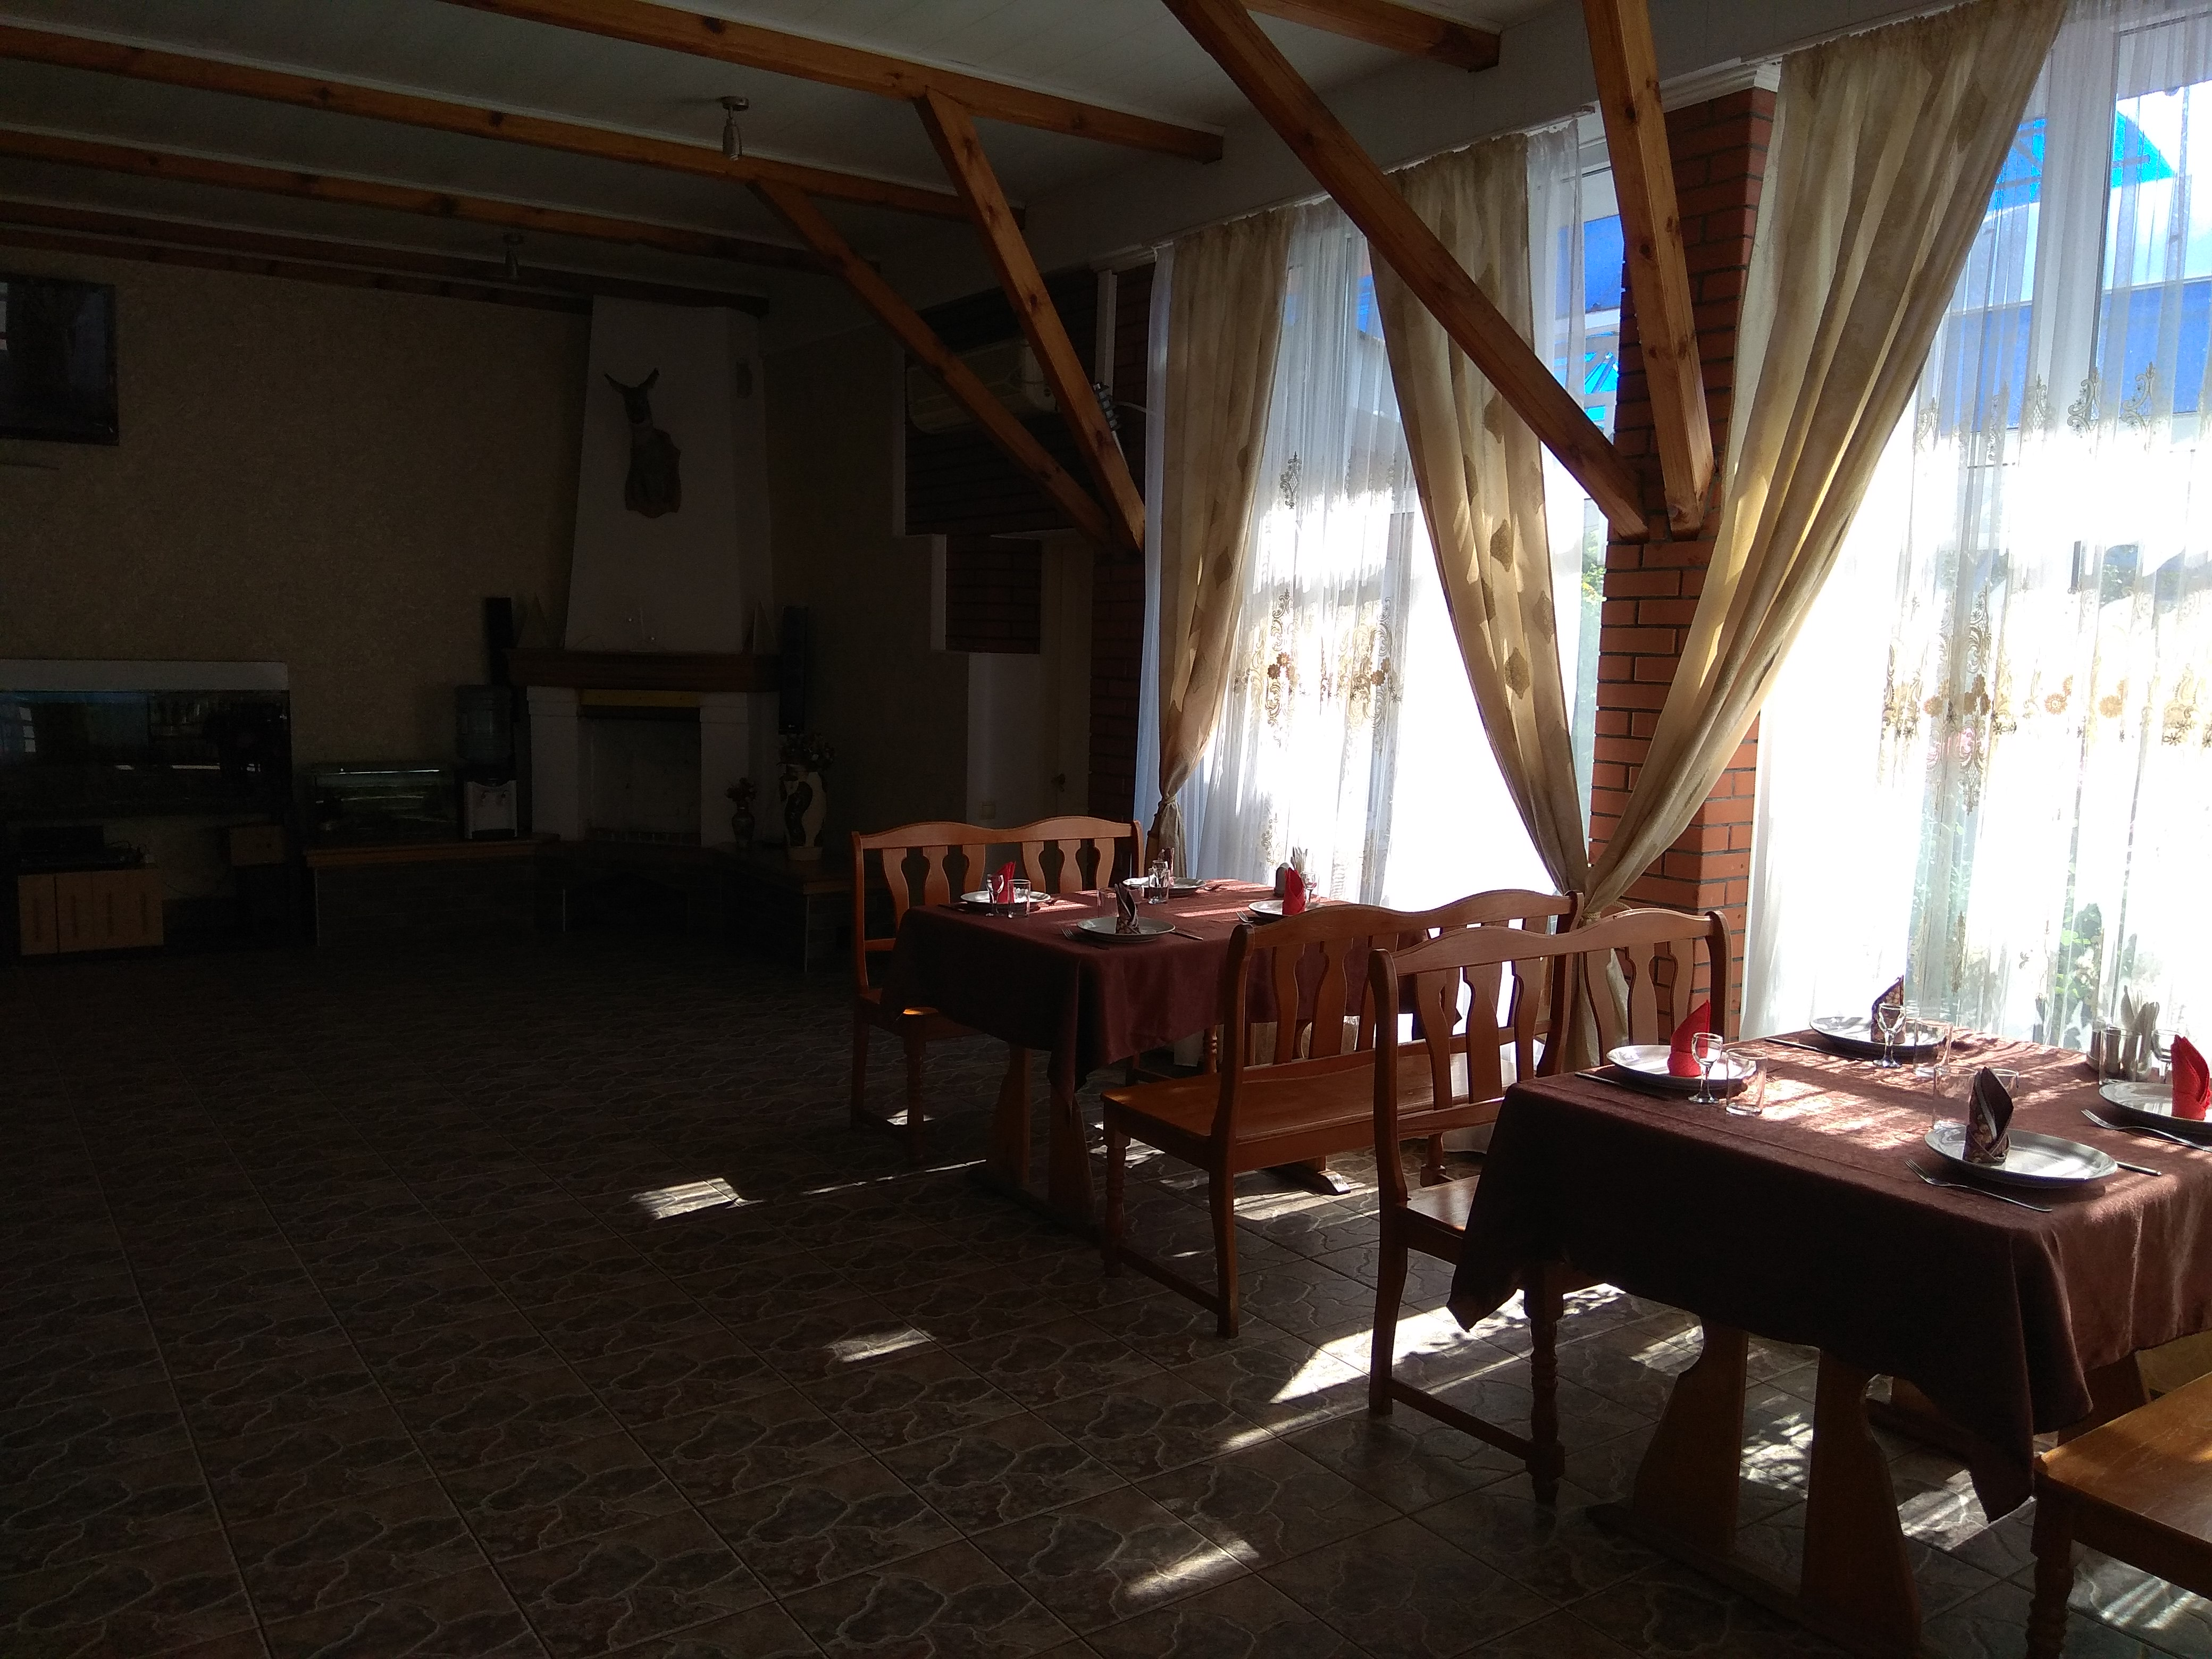 Hotels for animals in the Nikolaev region: a selection of sites